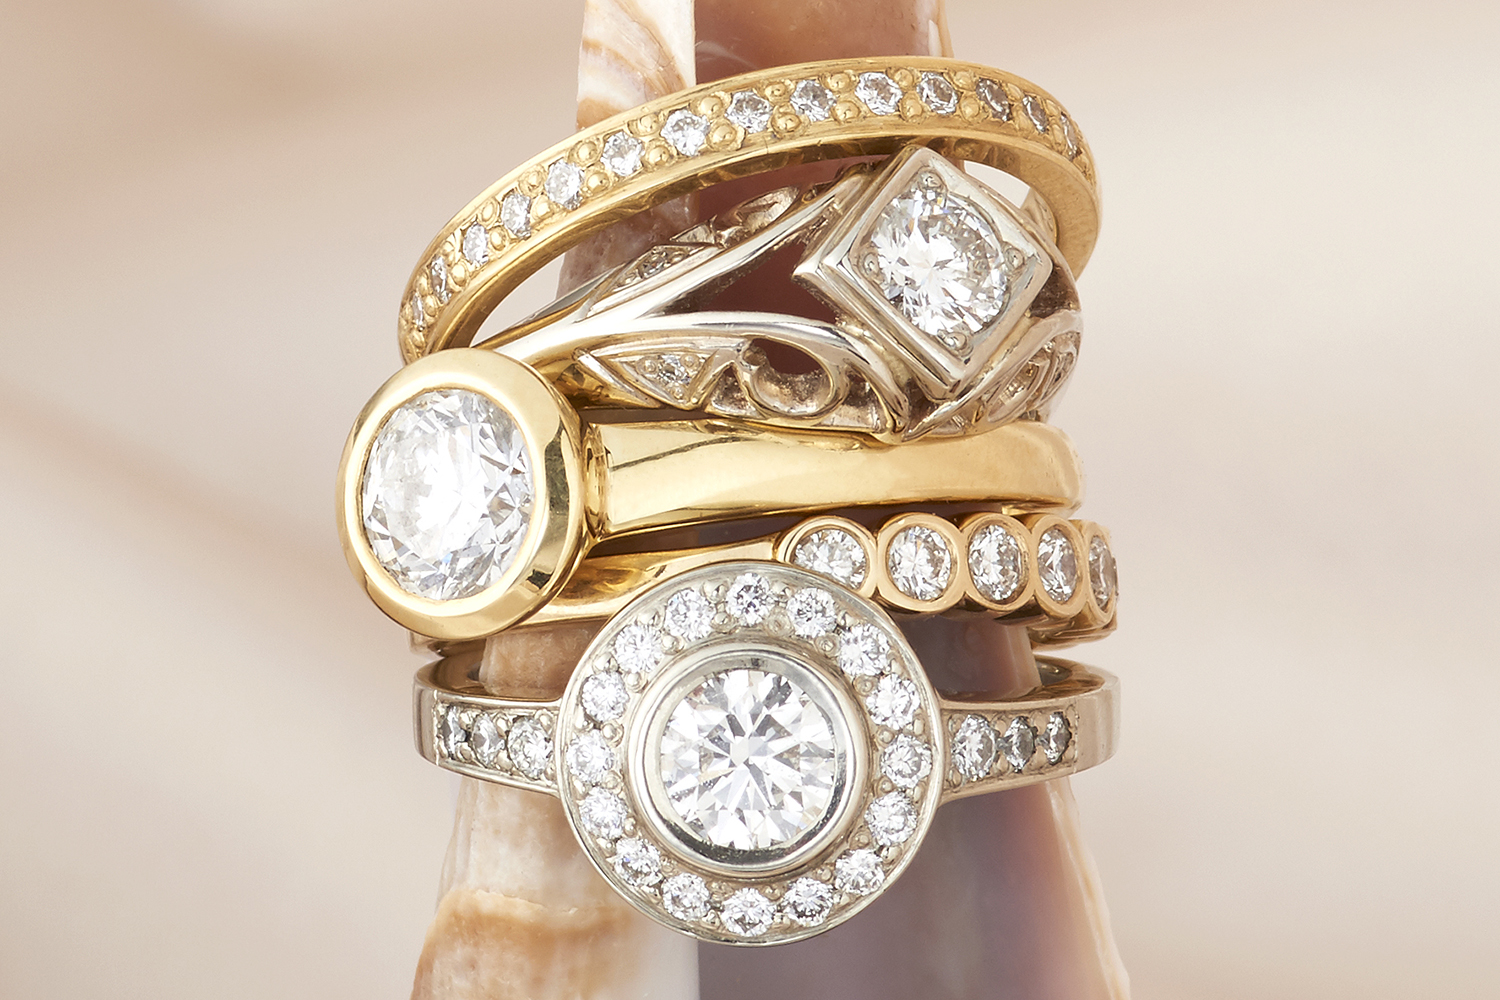 Diamond rings handmade in 18k & 14k Gold, designs by Reflections